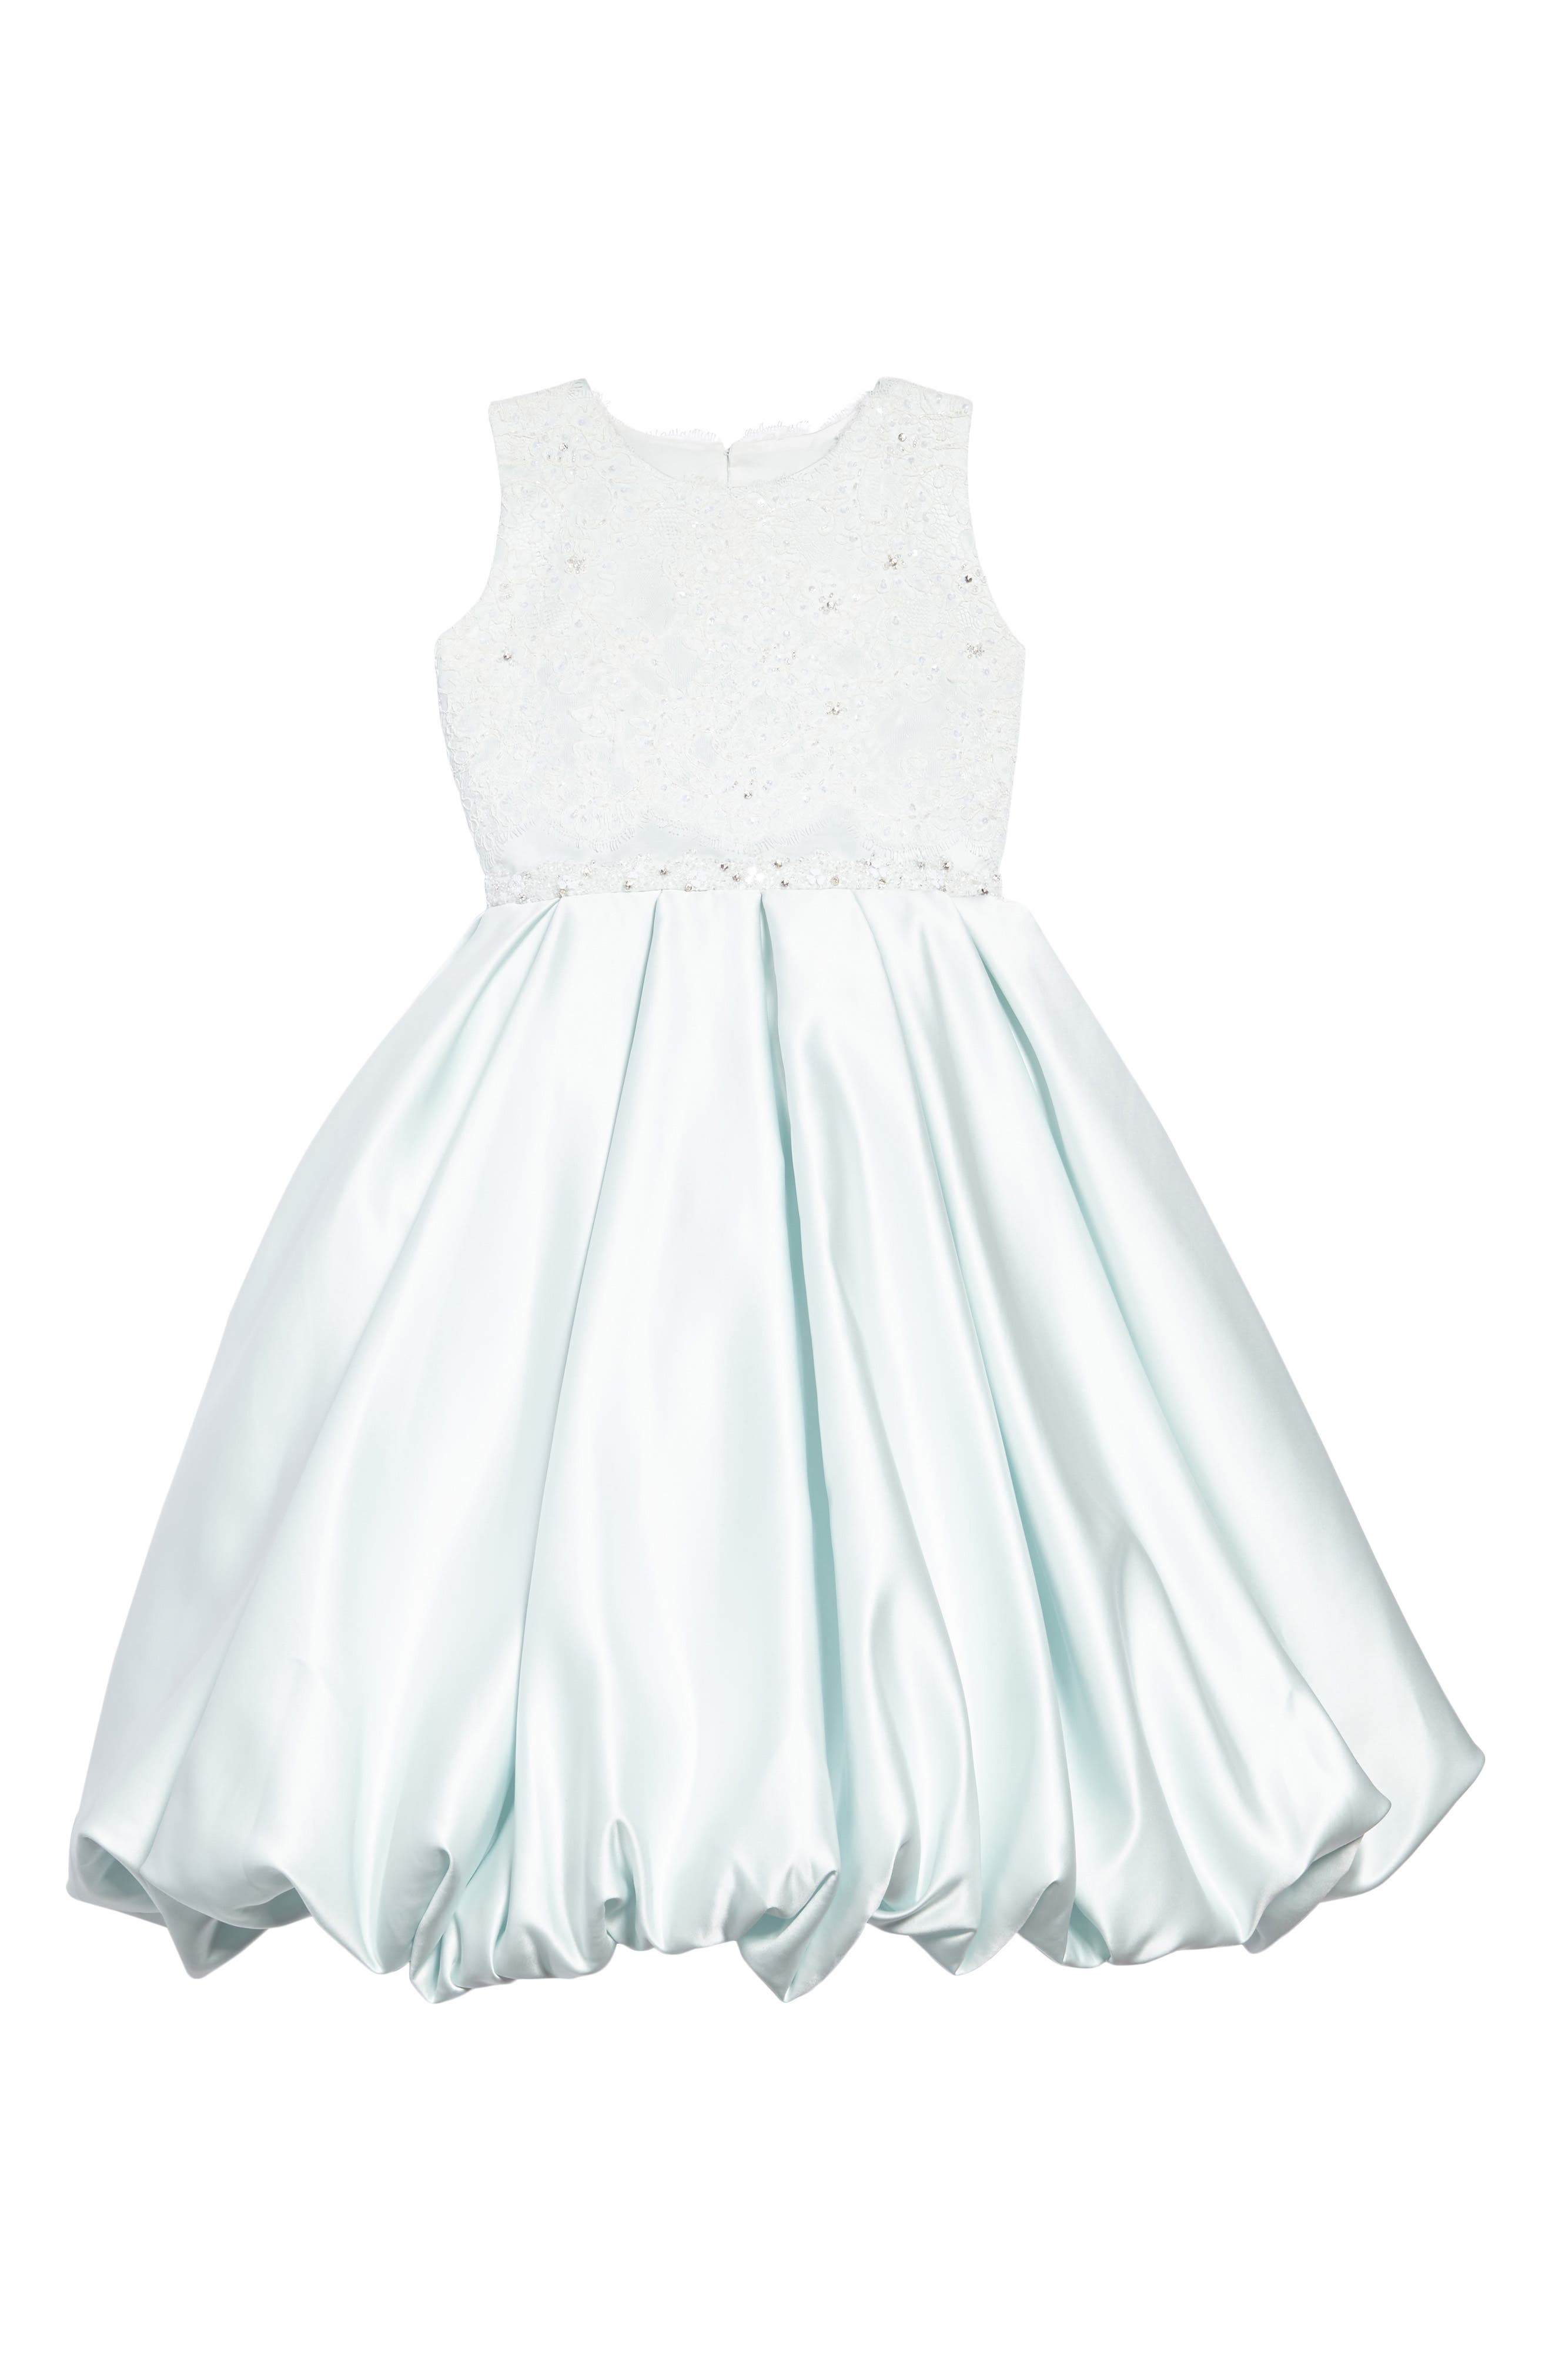 Main Image - Joan Calabrese for Mon Cheri Beaded Lace & Satin First Communion Dress (Toddler Girls, Little Girls & Big Girls)